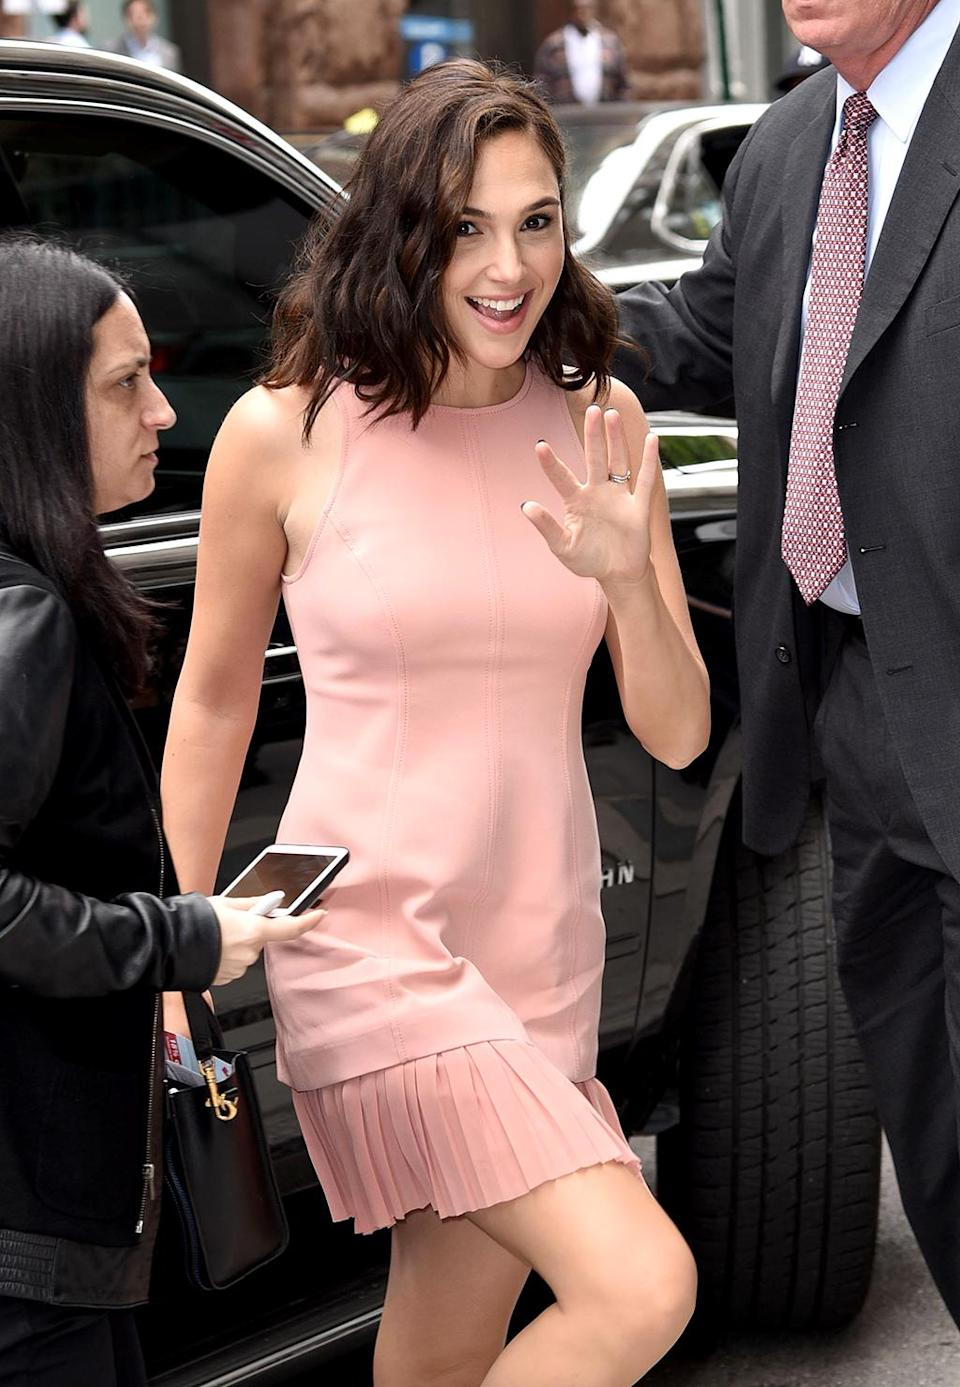 <p>Who says pink dresses have to be too sweet? Gadot looked sophisticated while rocking a pink frock with pleats as she arrived at the AOL Live offices in New York. (Photo: Derek Storm/Splash News) </p>